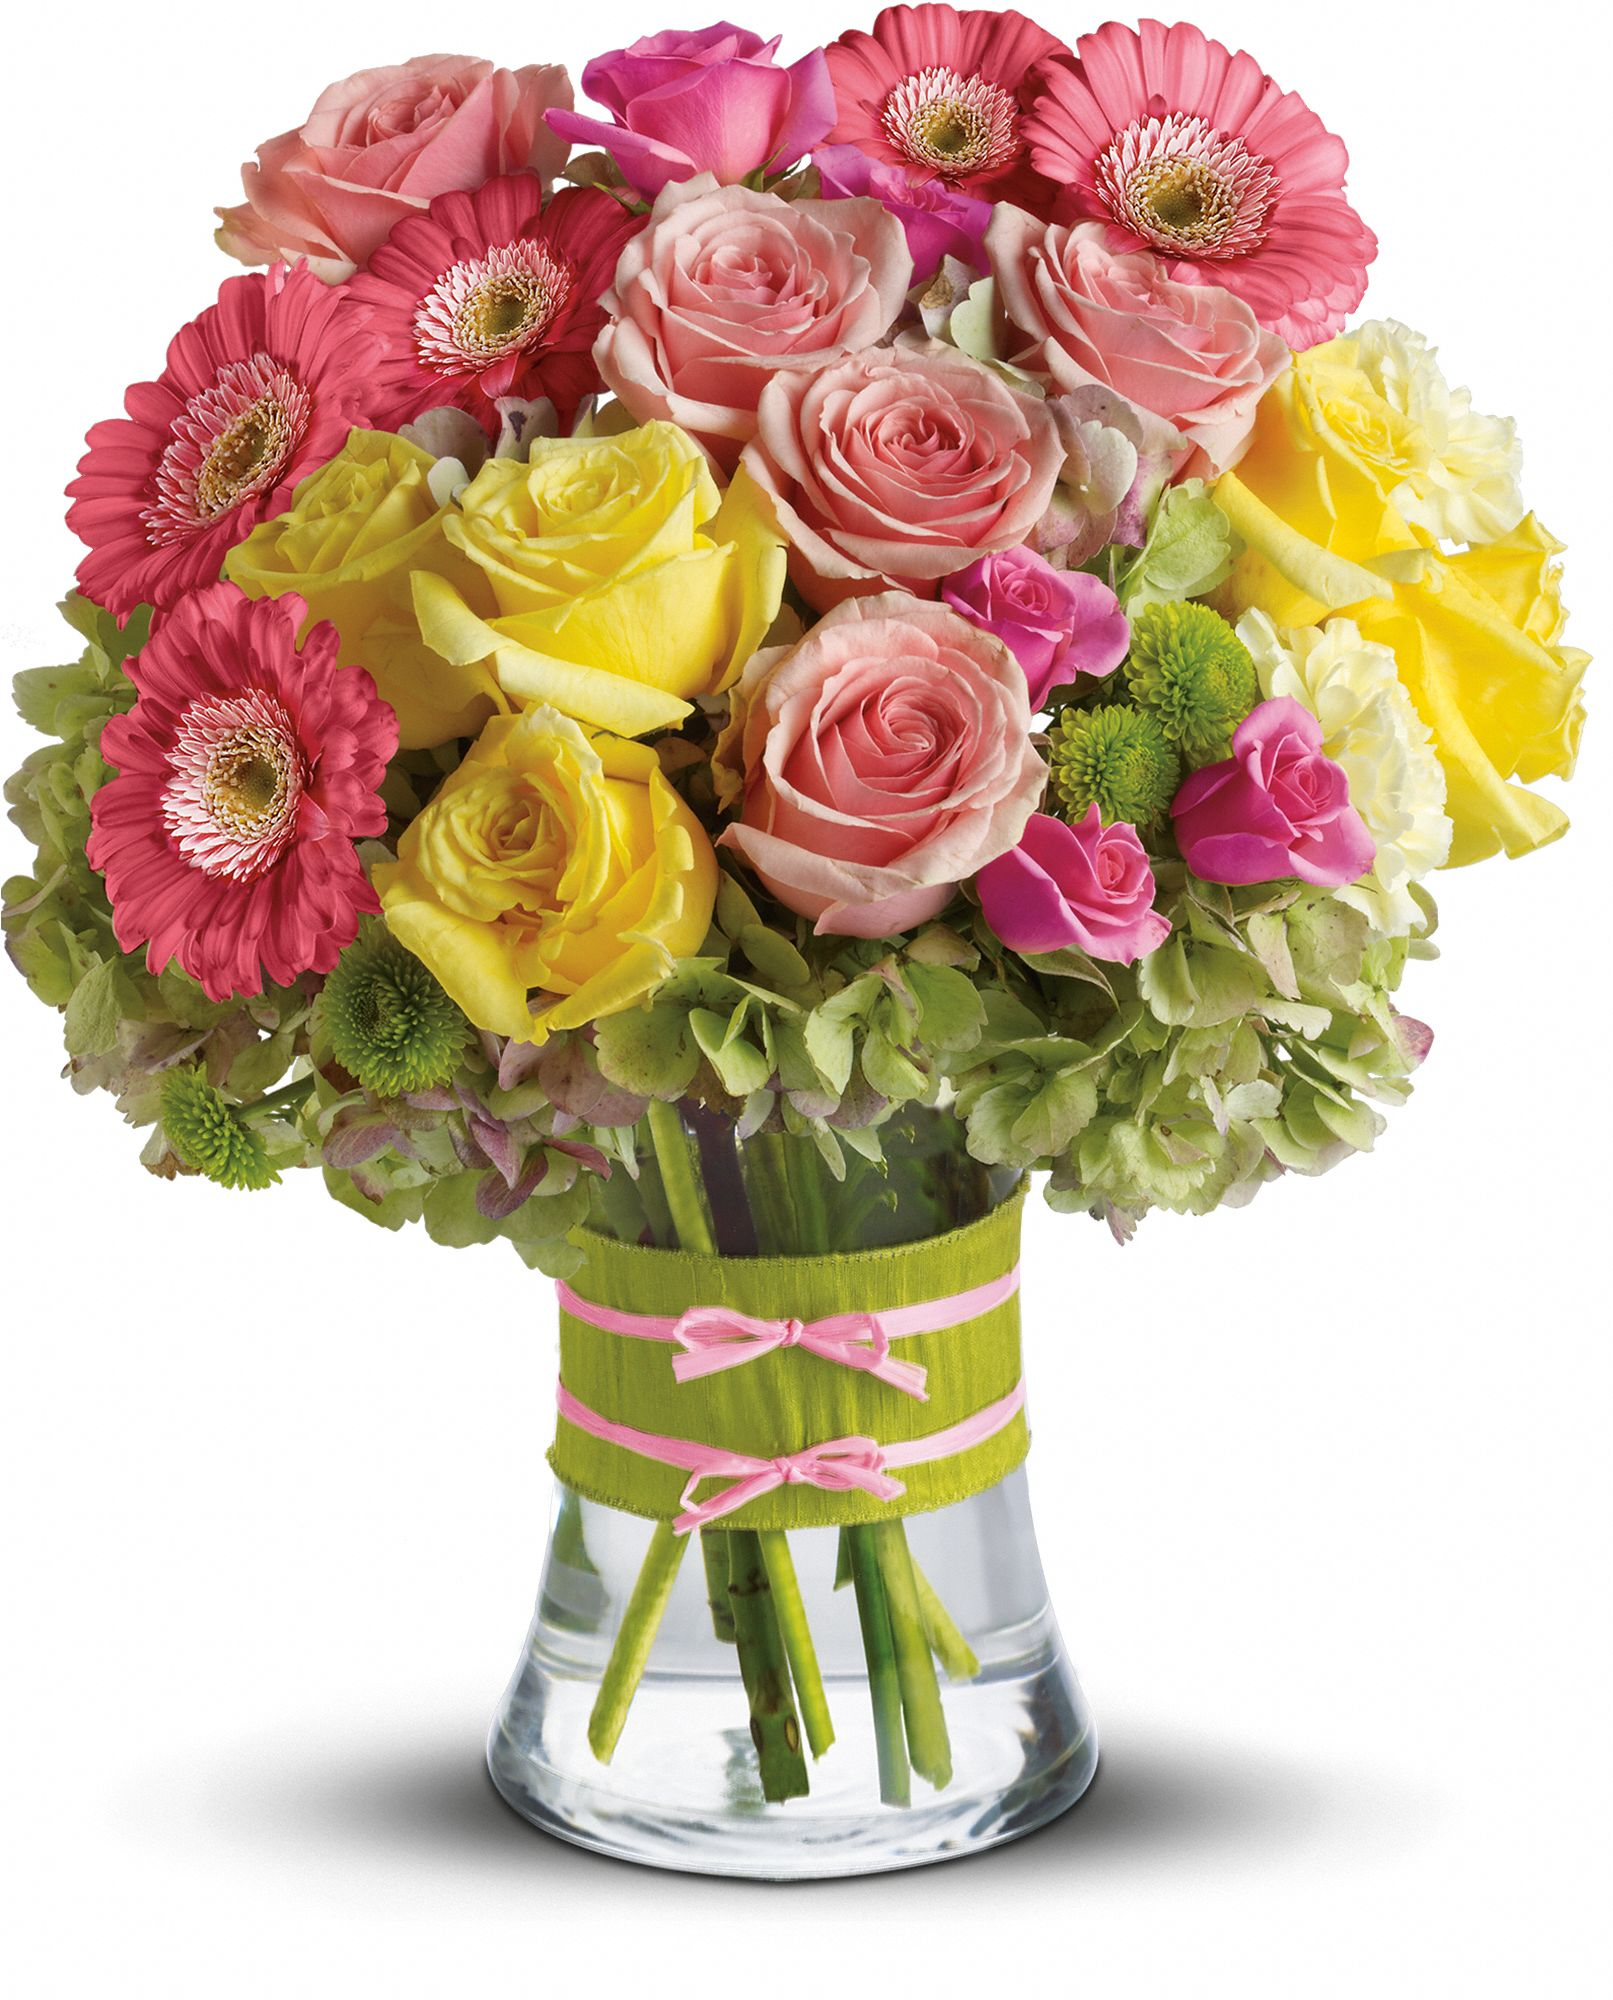 Fashionista Blooms Flowers Fashionista Blooms Flower Bouquet